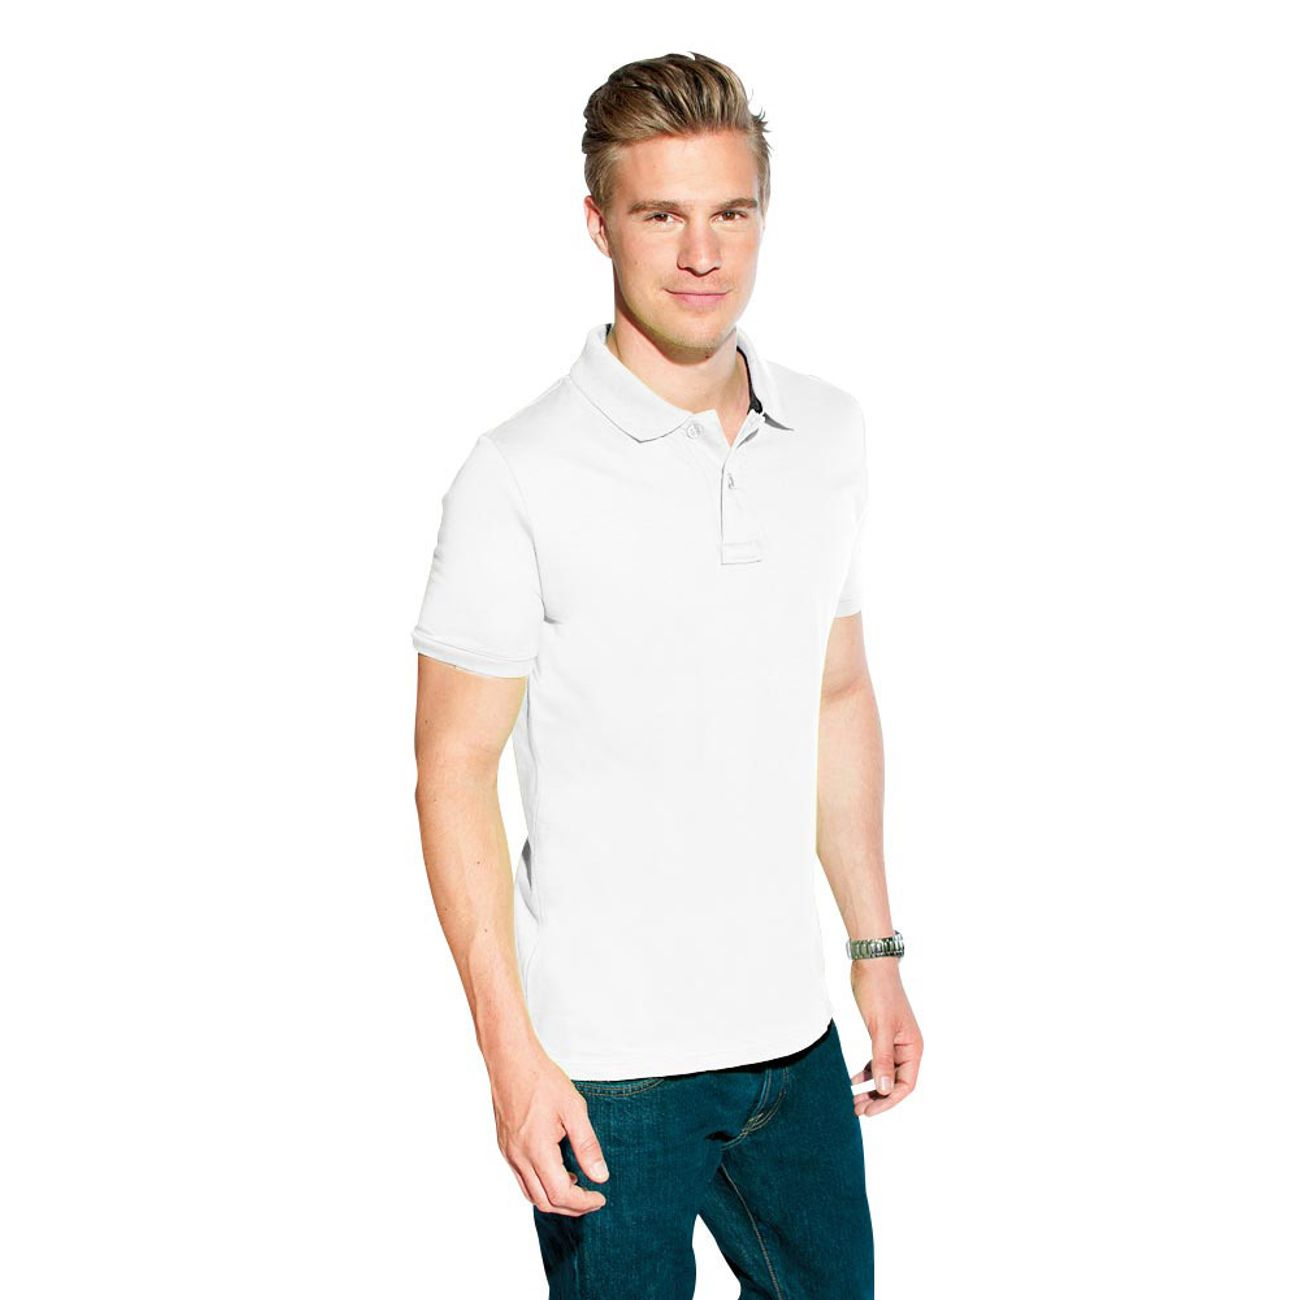 Polo Jersey simple Hommes, vert lime sauvage / noir